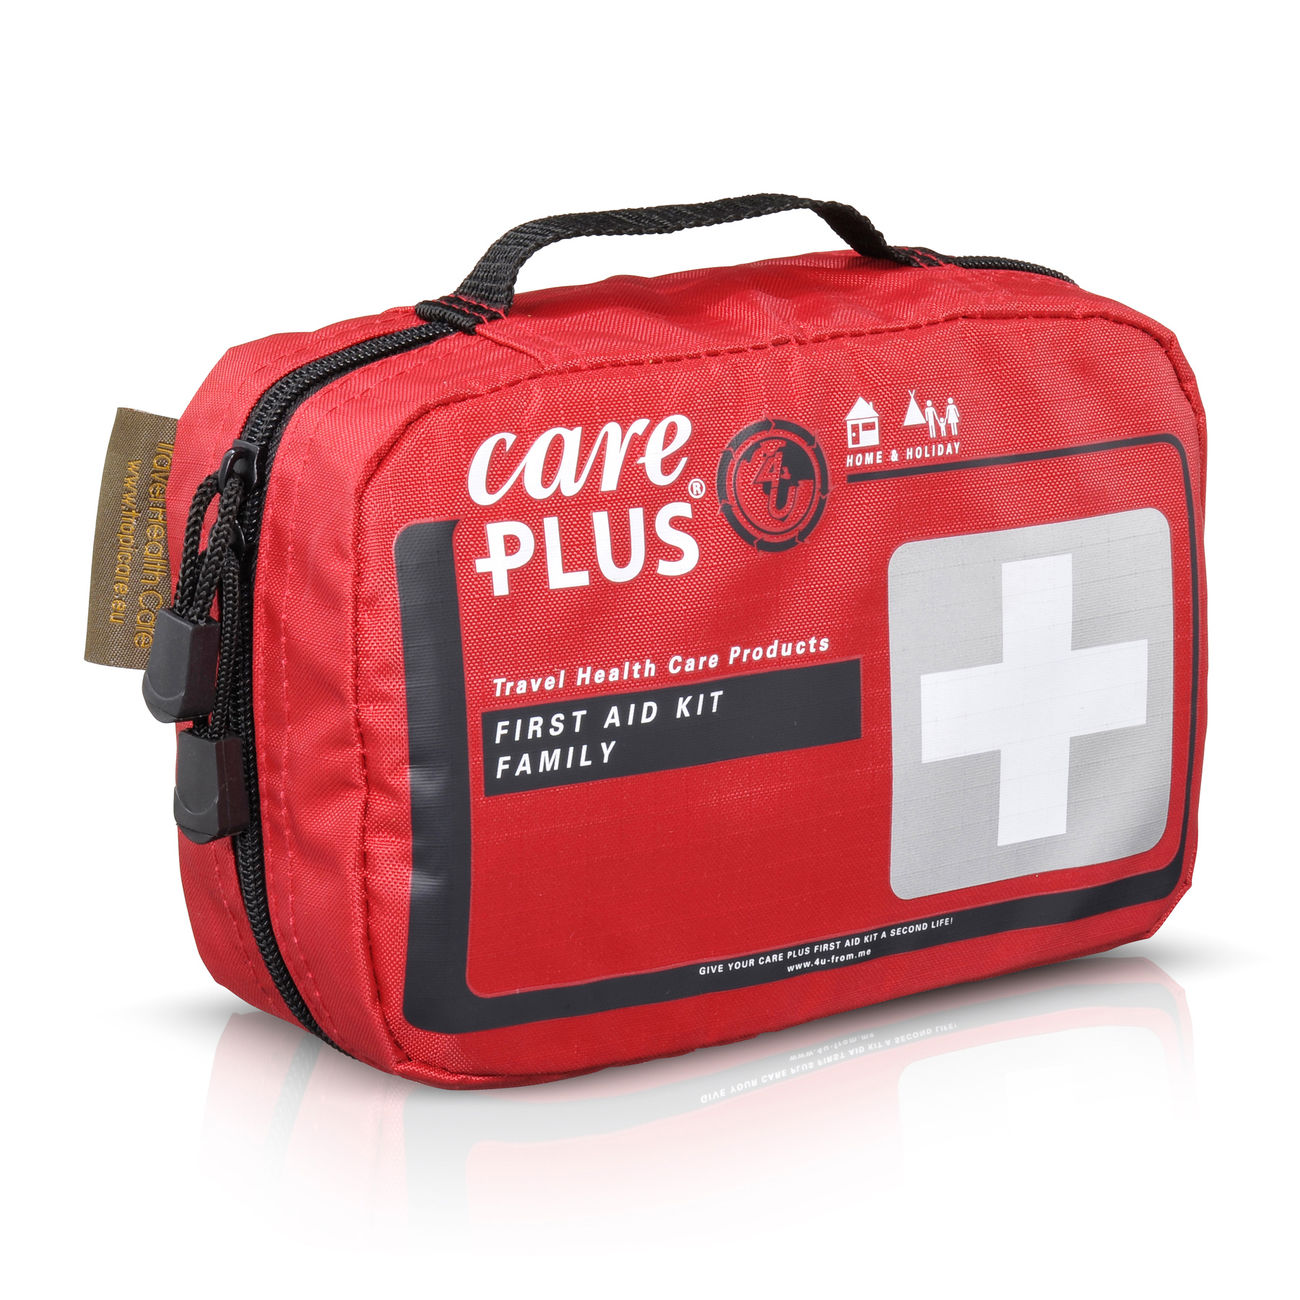 Care Plus First Aid Kit Family 0